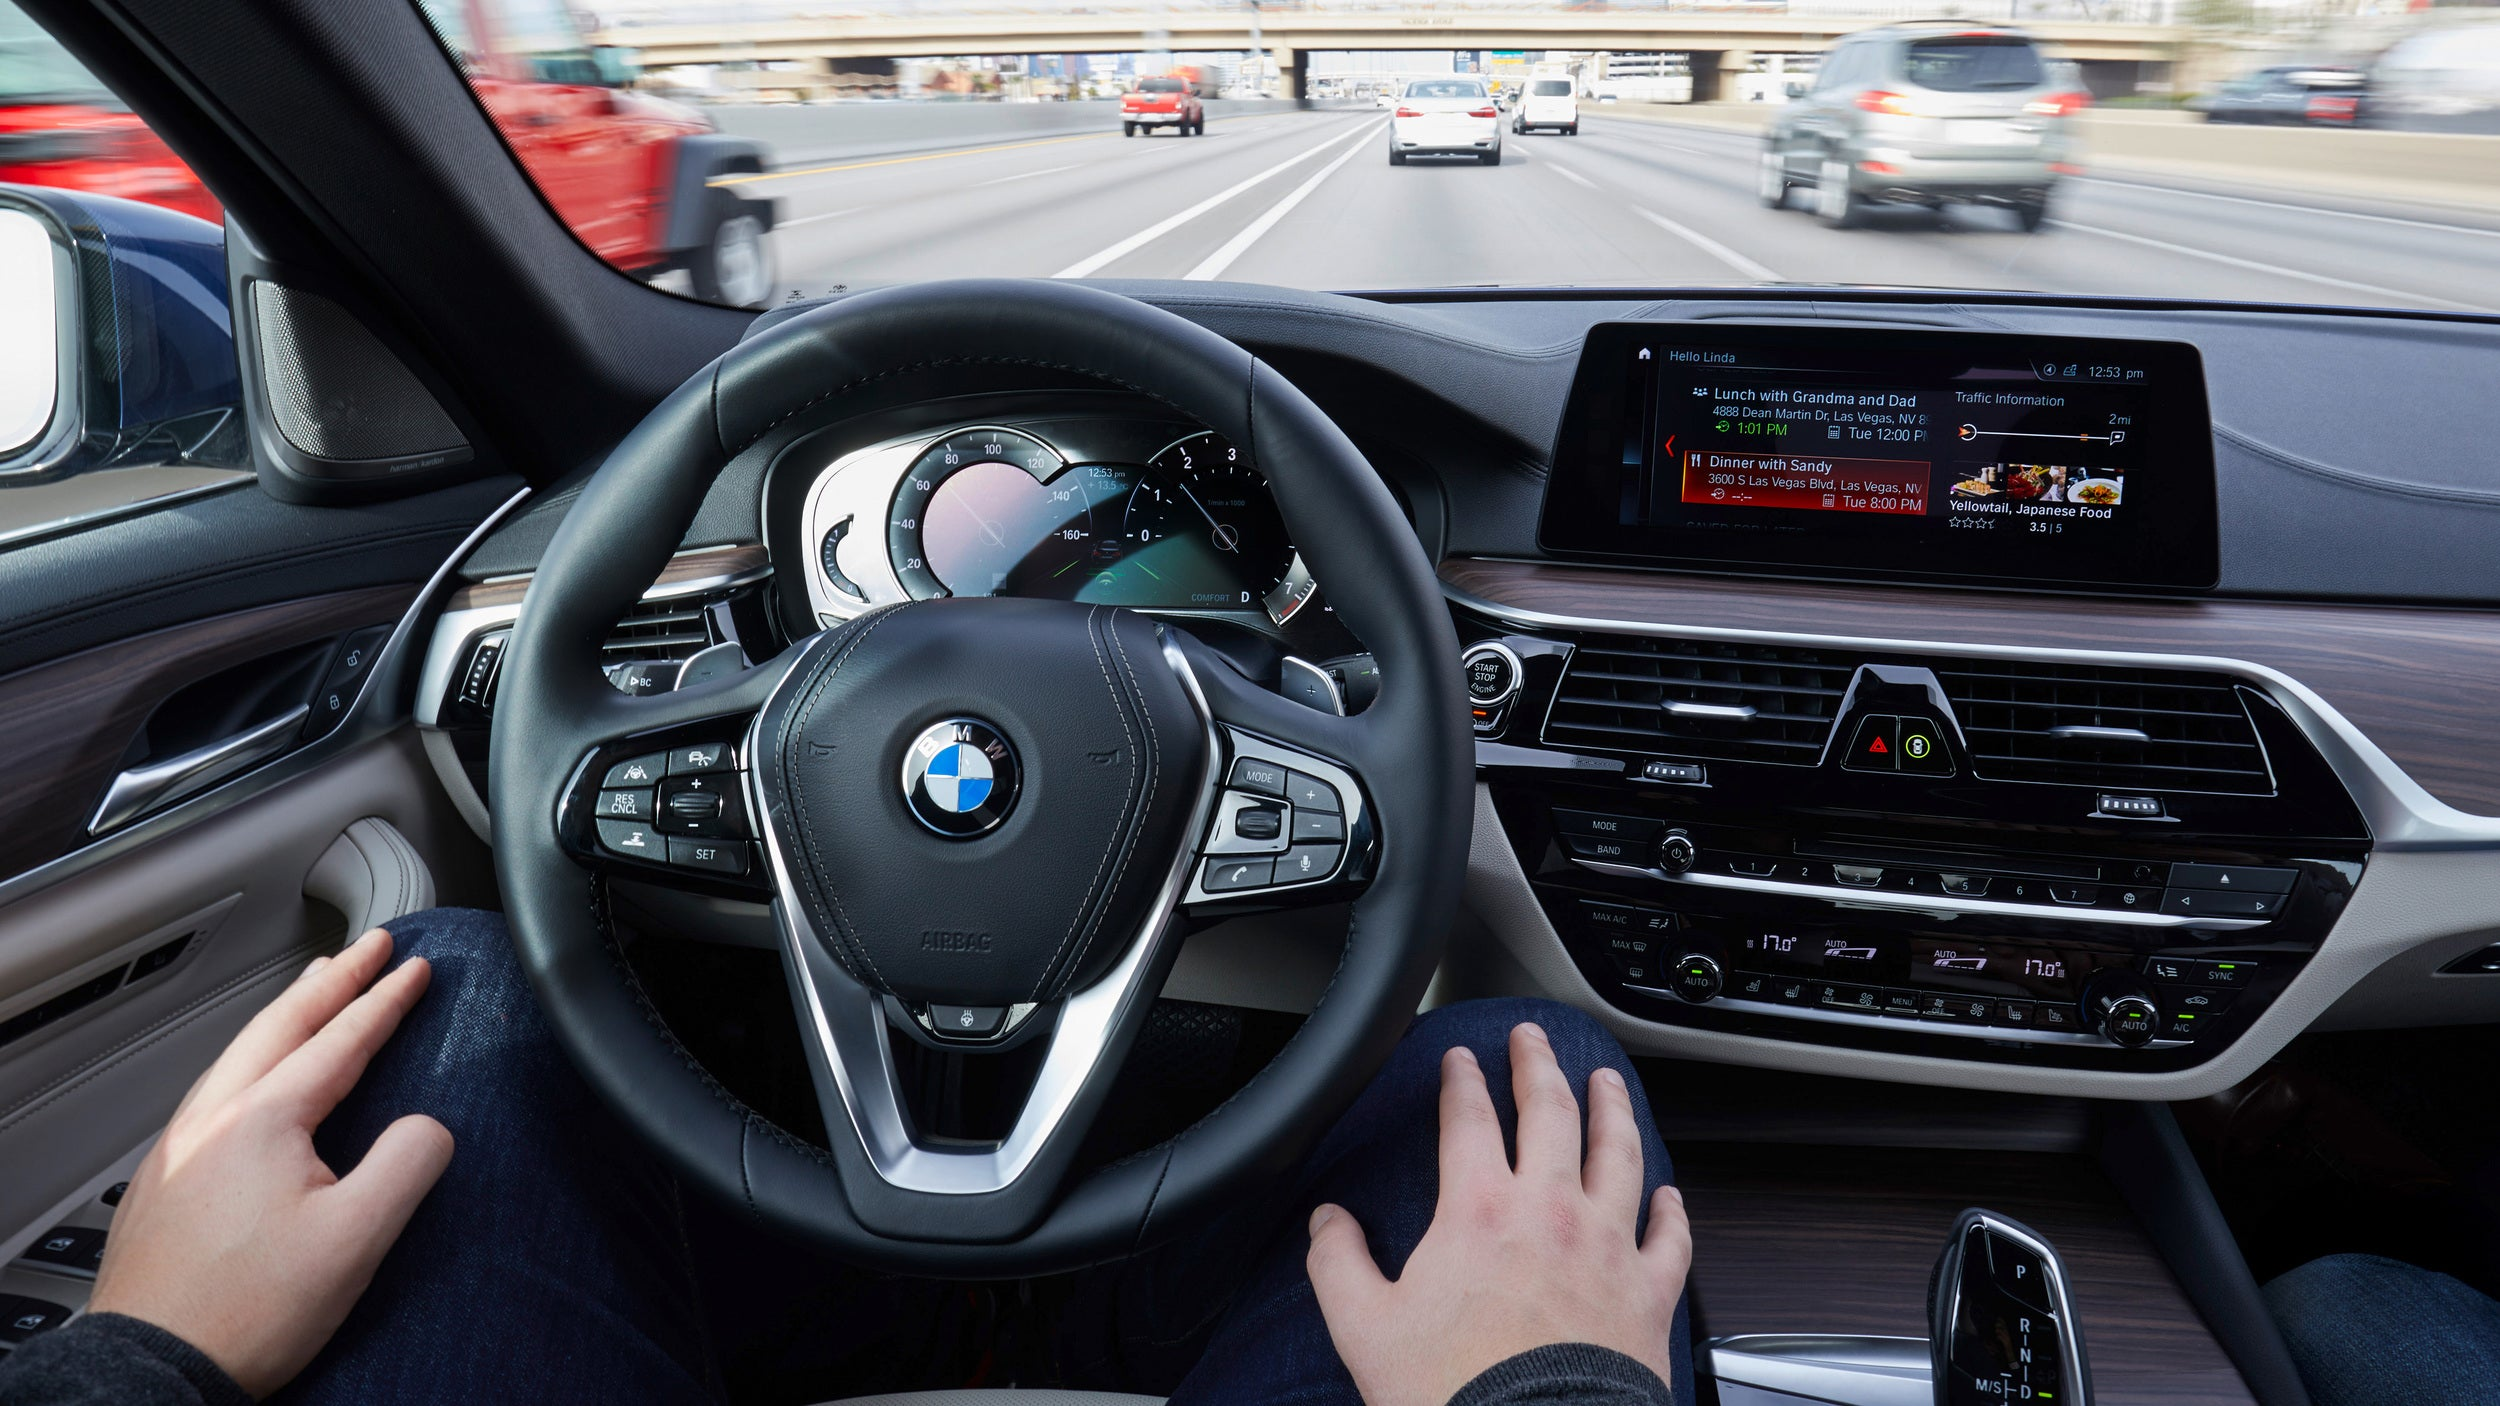 BMW: Go Ahead, Take Your Hands Off The Wheel Of Our 5 Series Prototype, It's Fine